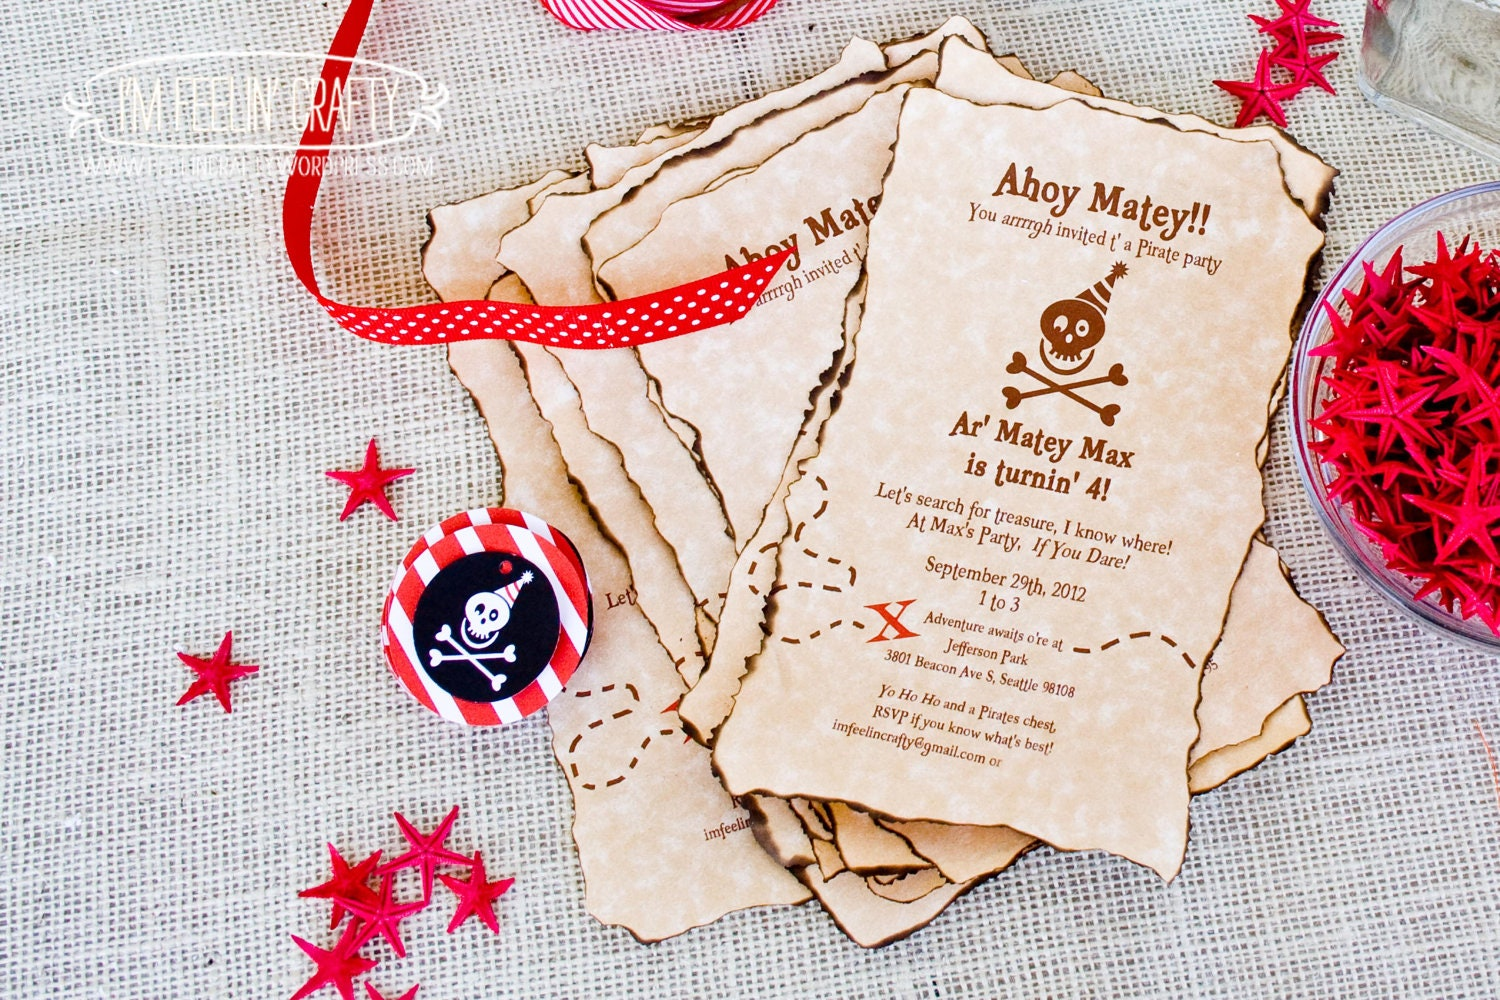 Pirate Birthday Party For Adults